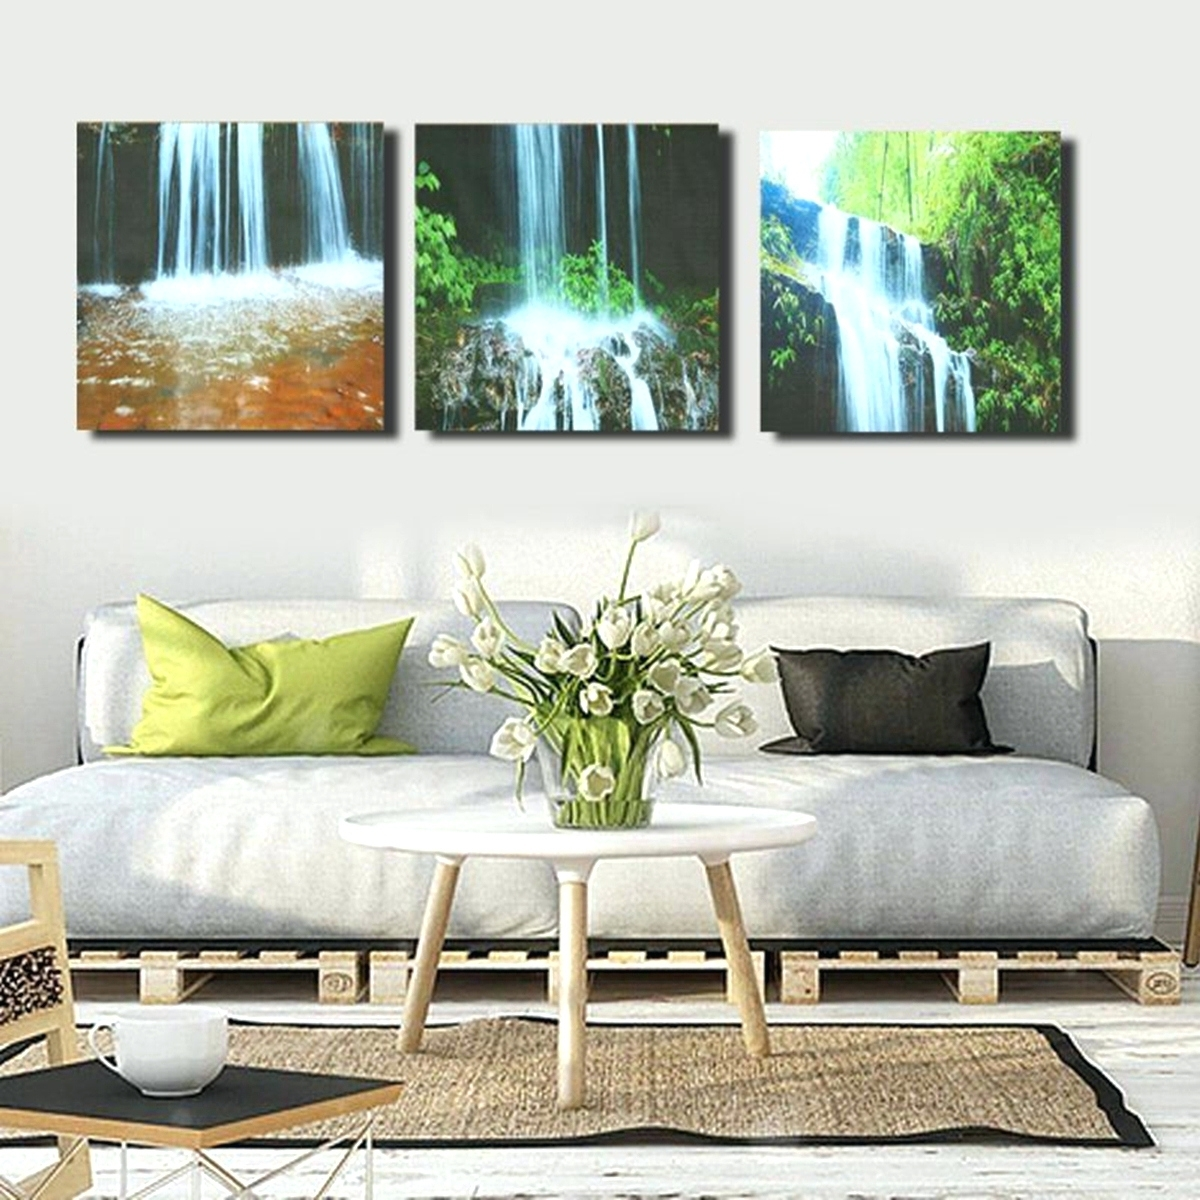 Recent Homebase Canvas Wall Art In Wall Arts ~ Wall Art Home Decor Murals Zoom Homebase Wall Art (View 4 of 15)